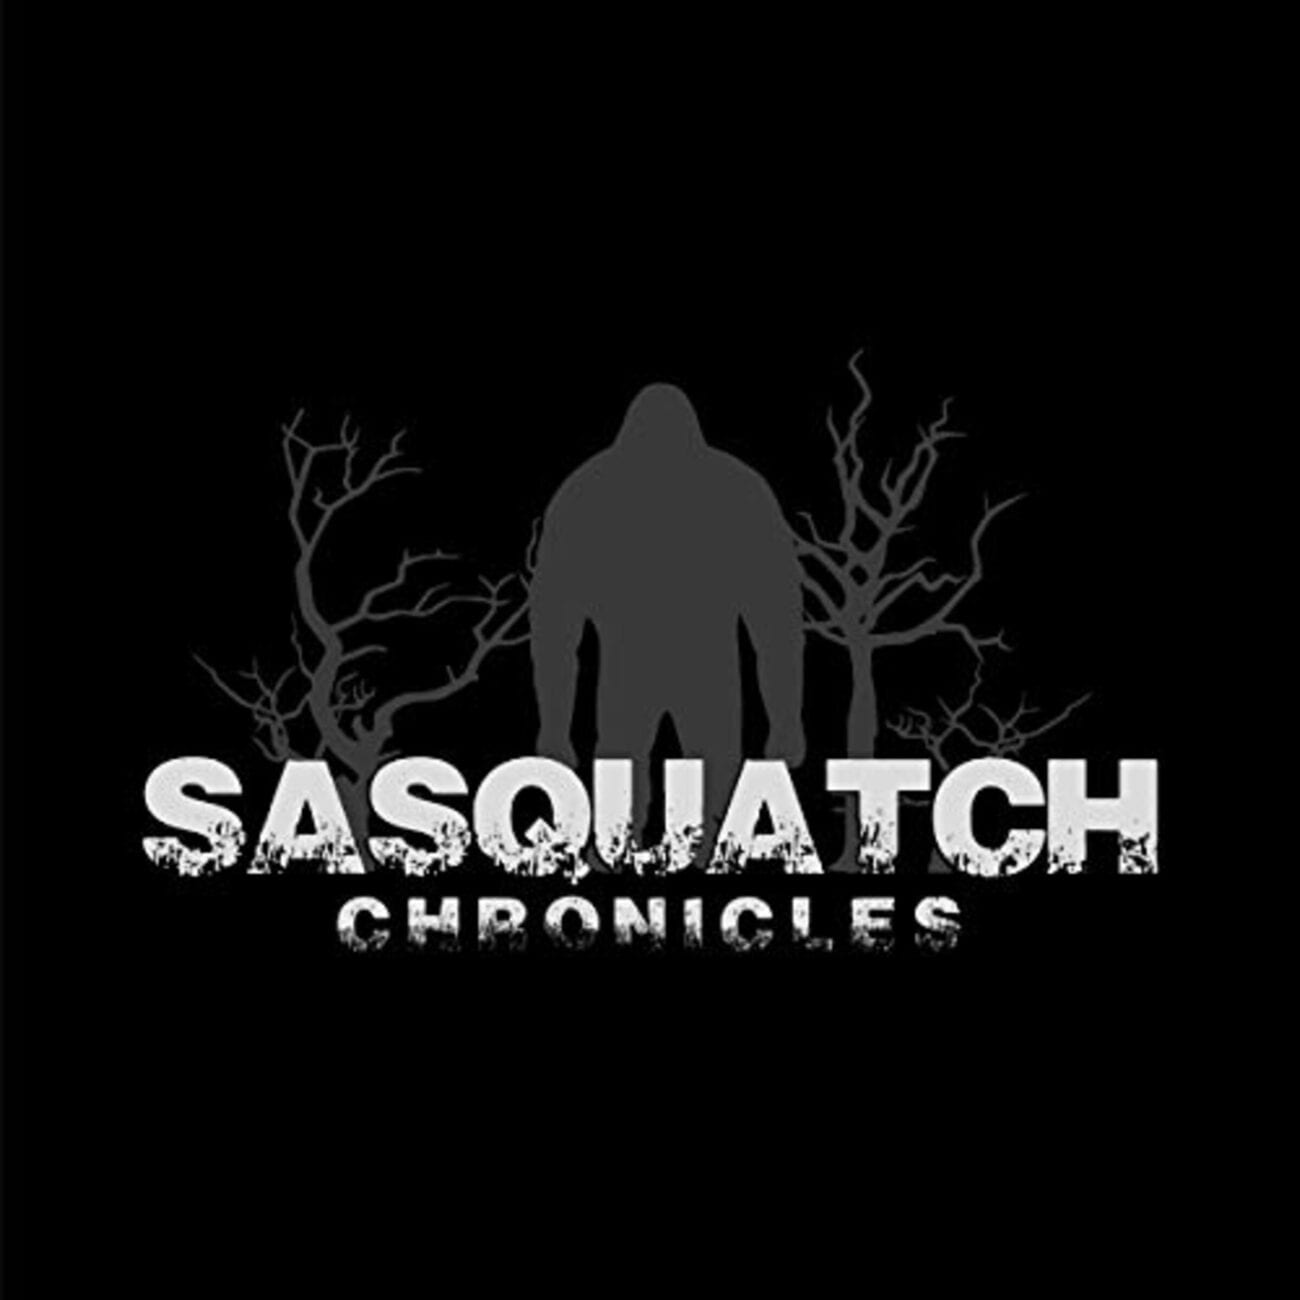 If you're looking for bigfoot and haven't visited the Sasquatch Chronicles, you're really missing out. You have to see their craziest stories here!